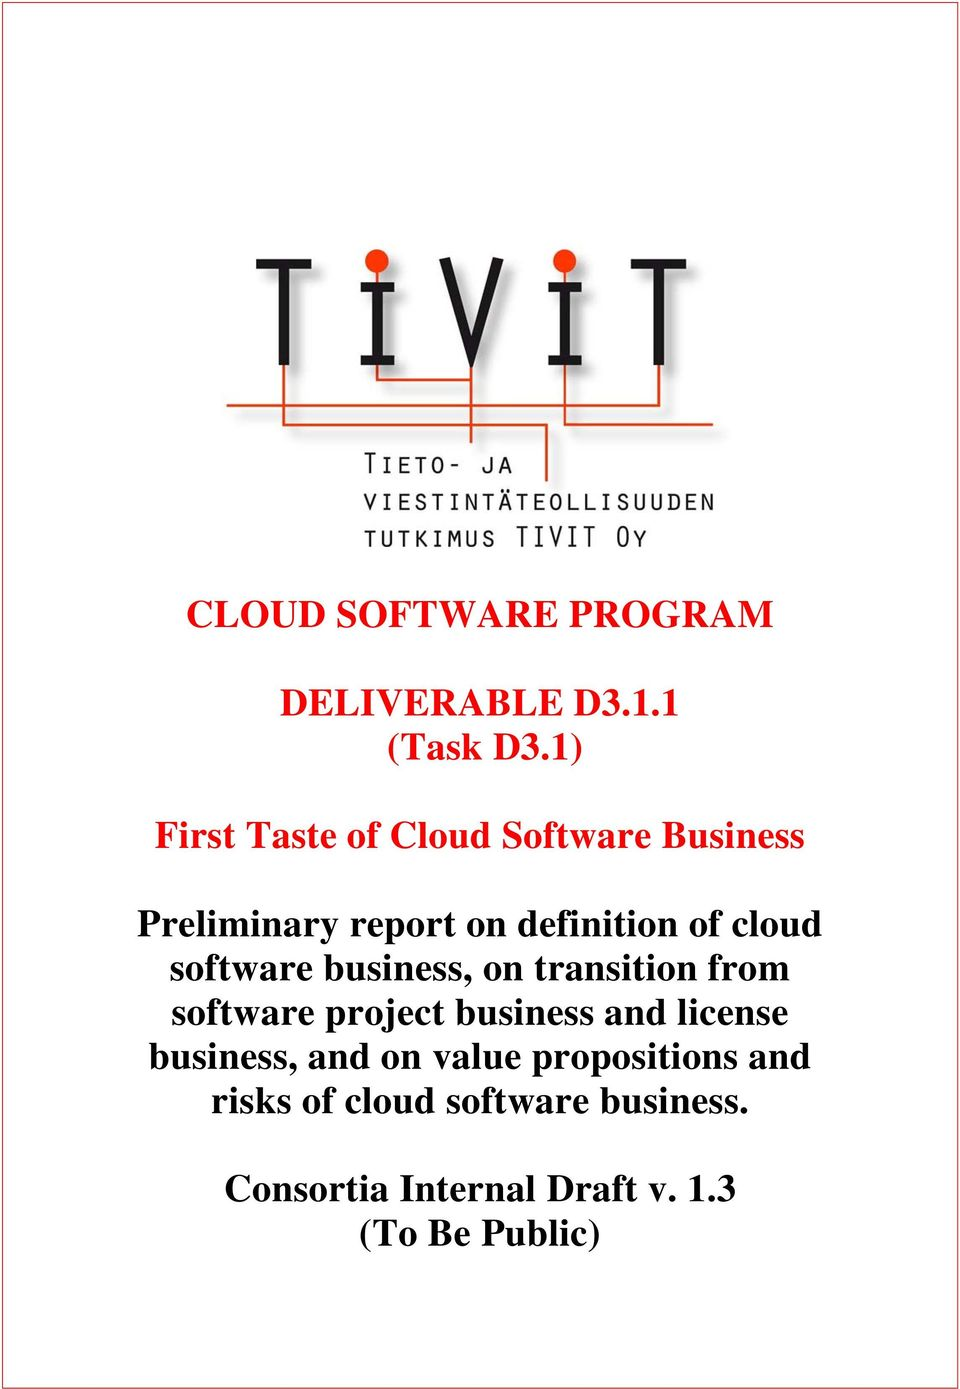 cloud software business, on transition from software project business and license